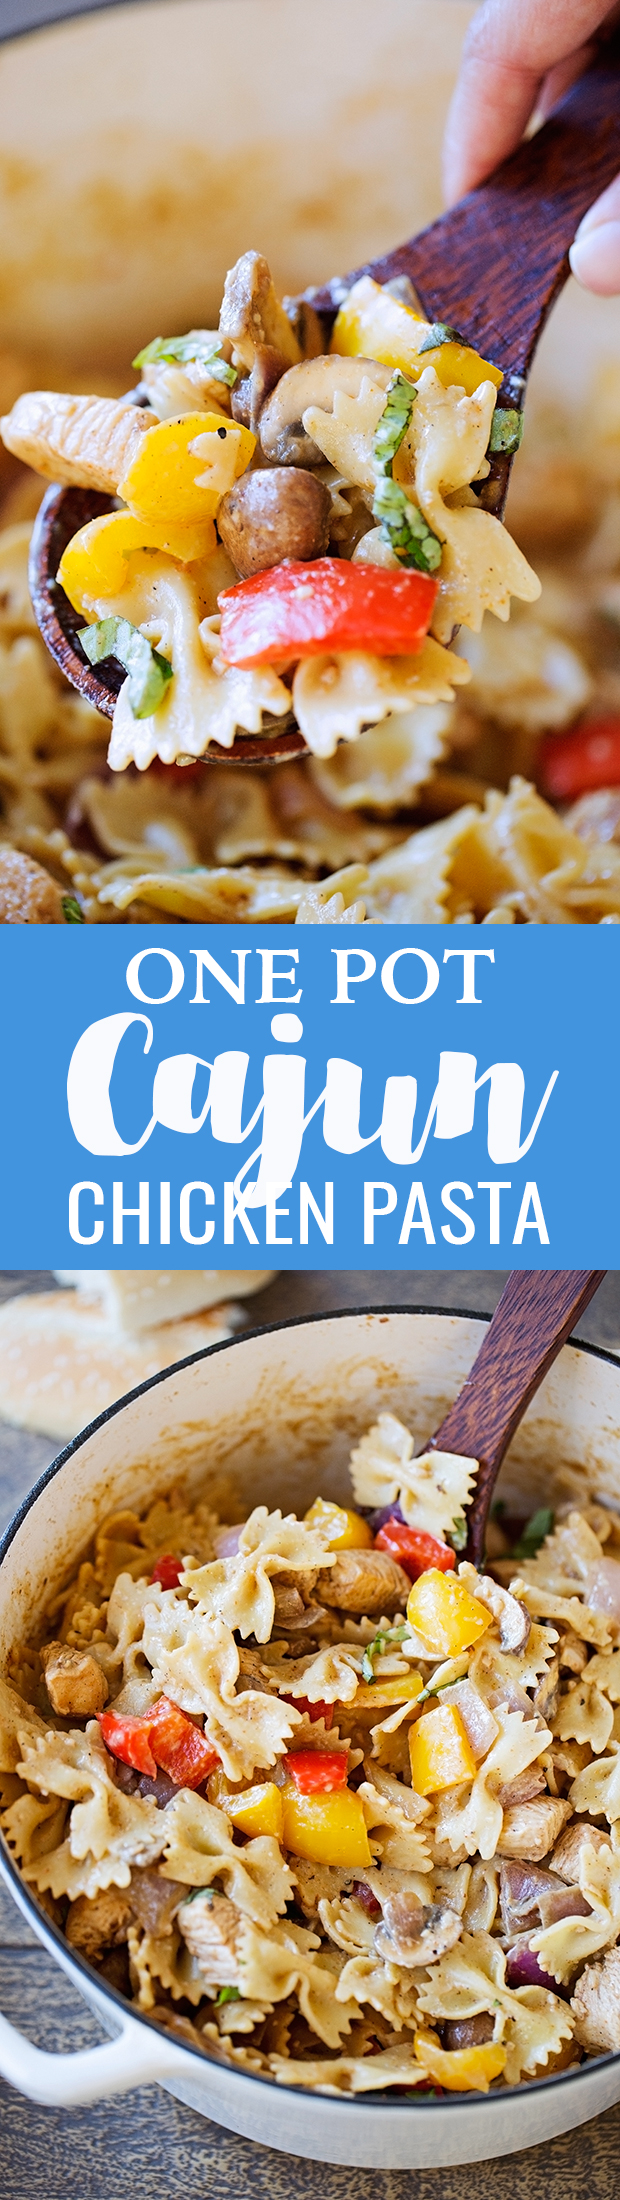 One Pot Creamy Cajun Chicken Pasta - An easy one pot recipe for Louisiana Chicken Pasta. This recipe is simple and takes about 30 minutes to make! #lousianachickenpasta #cajunchickenpasta #onepotdinners | Littlespicejar.com